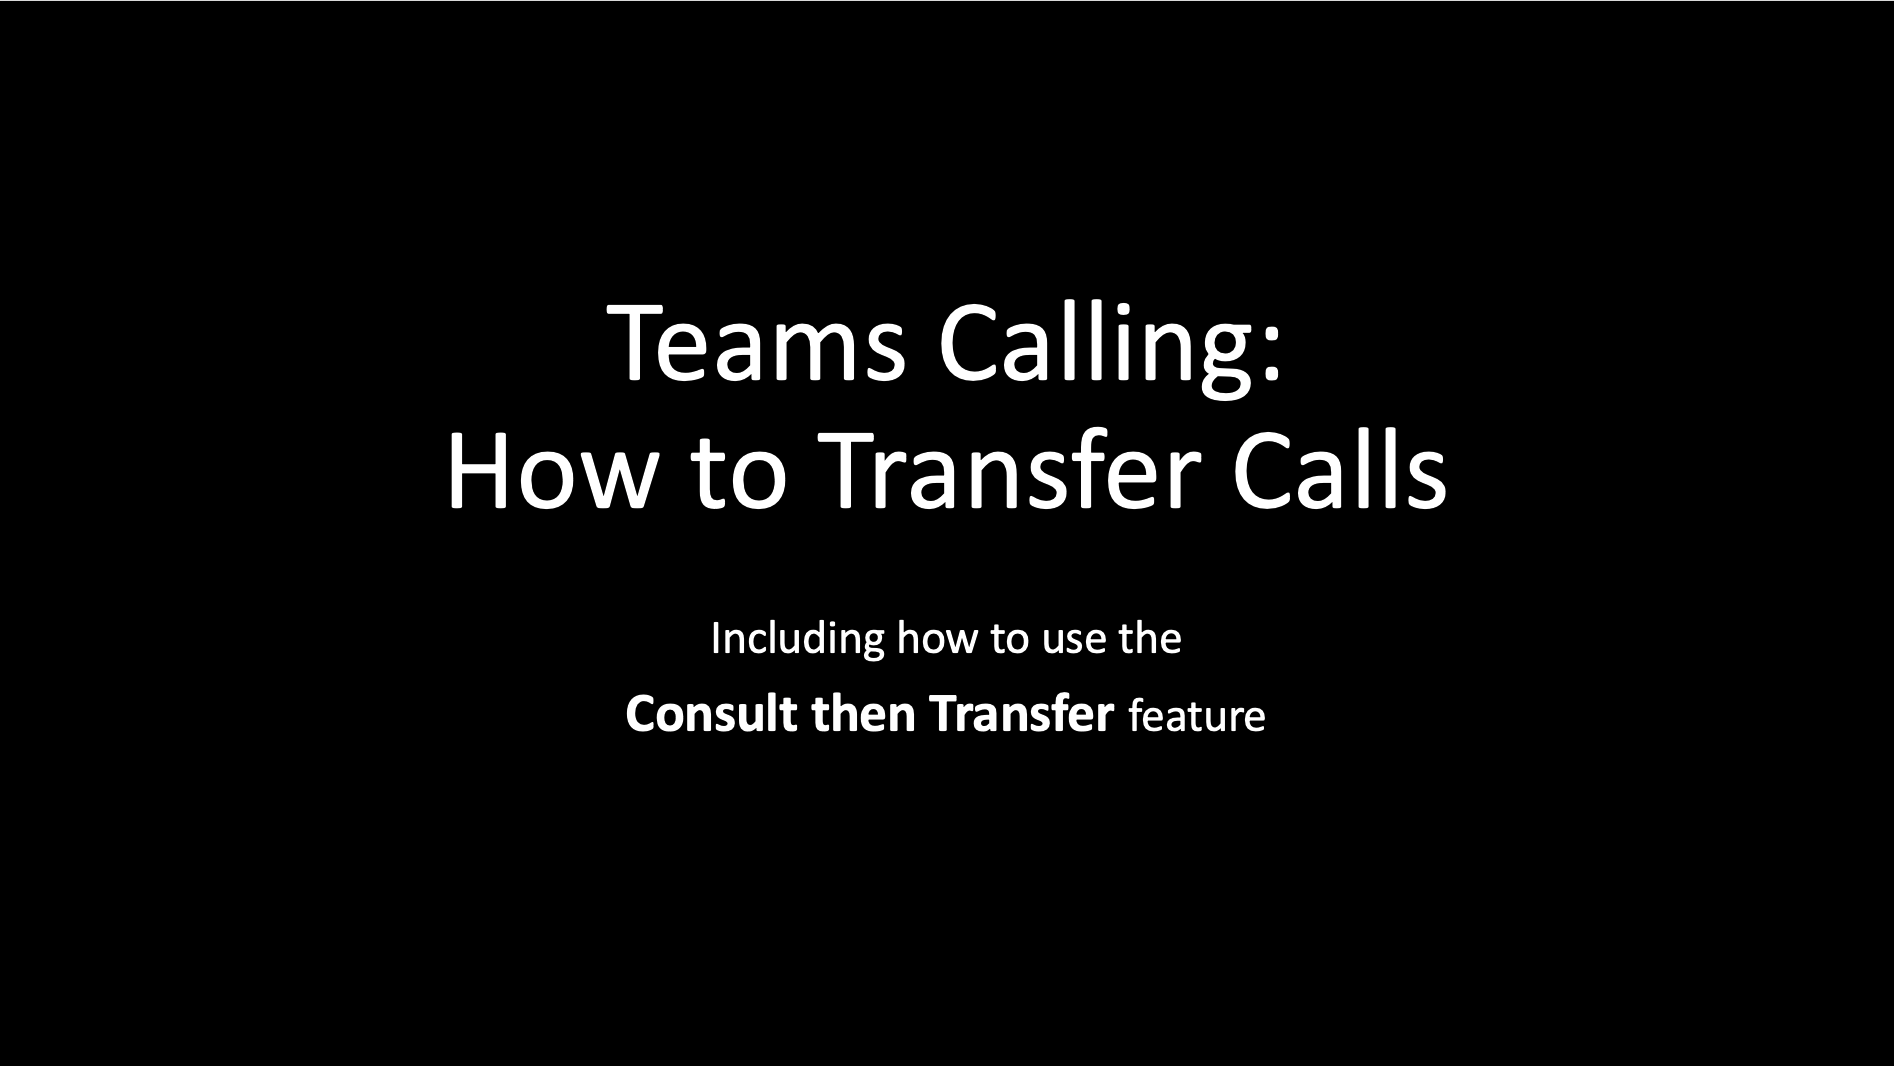 How to transfer calls in Teams